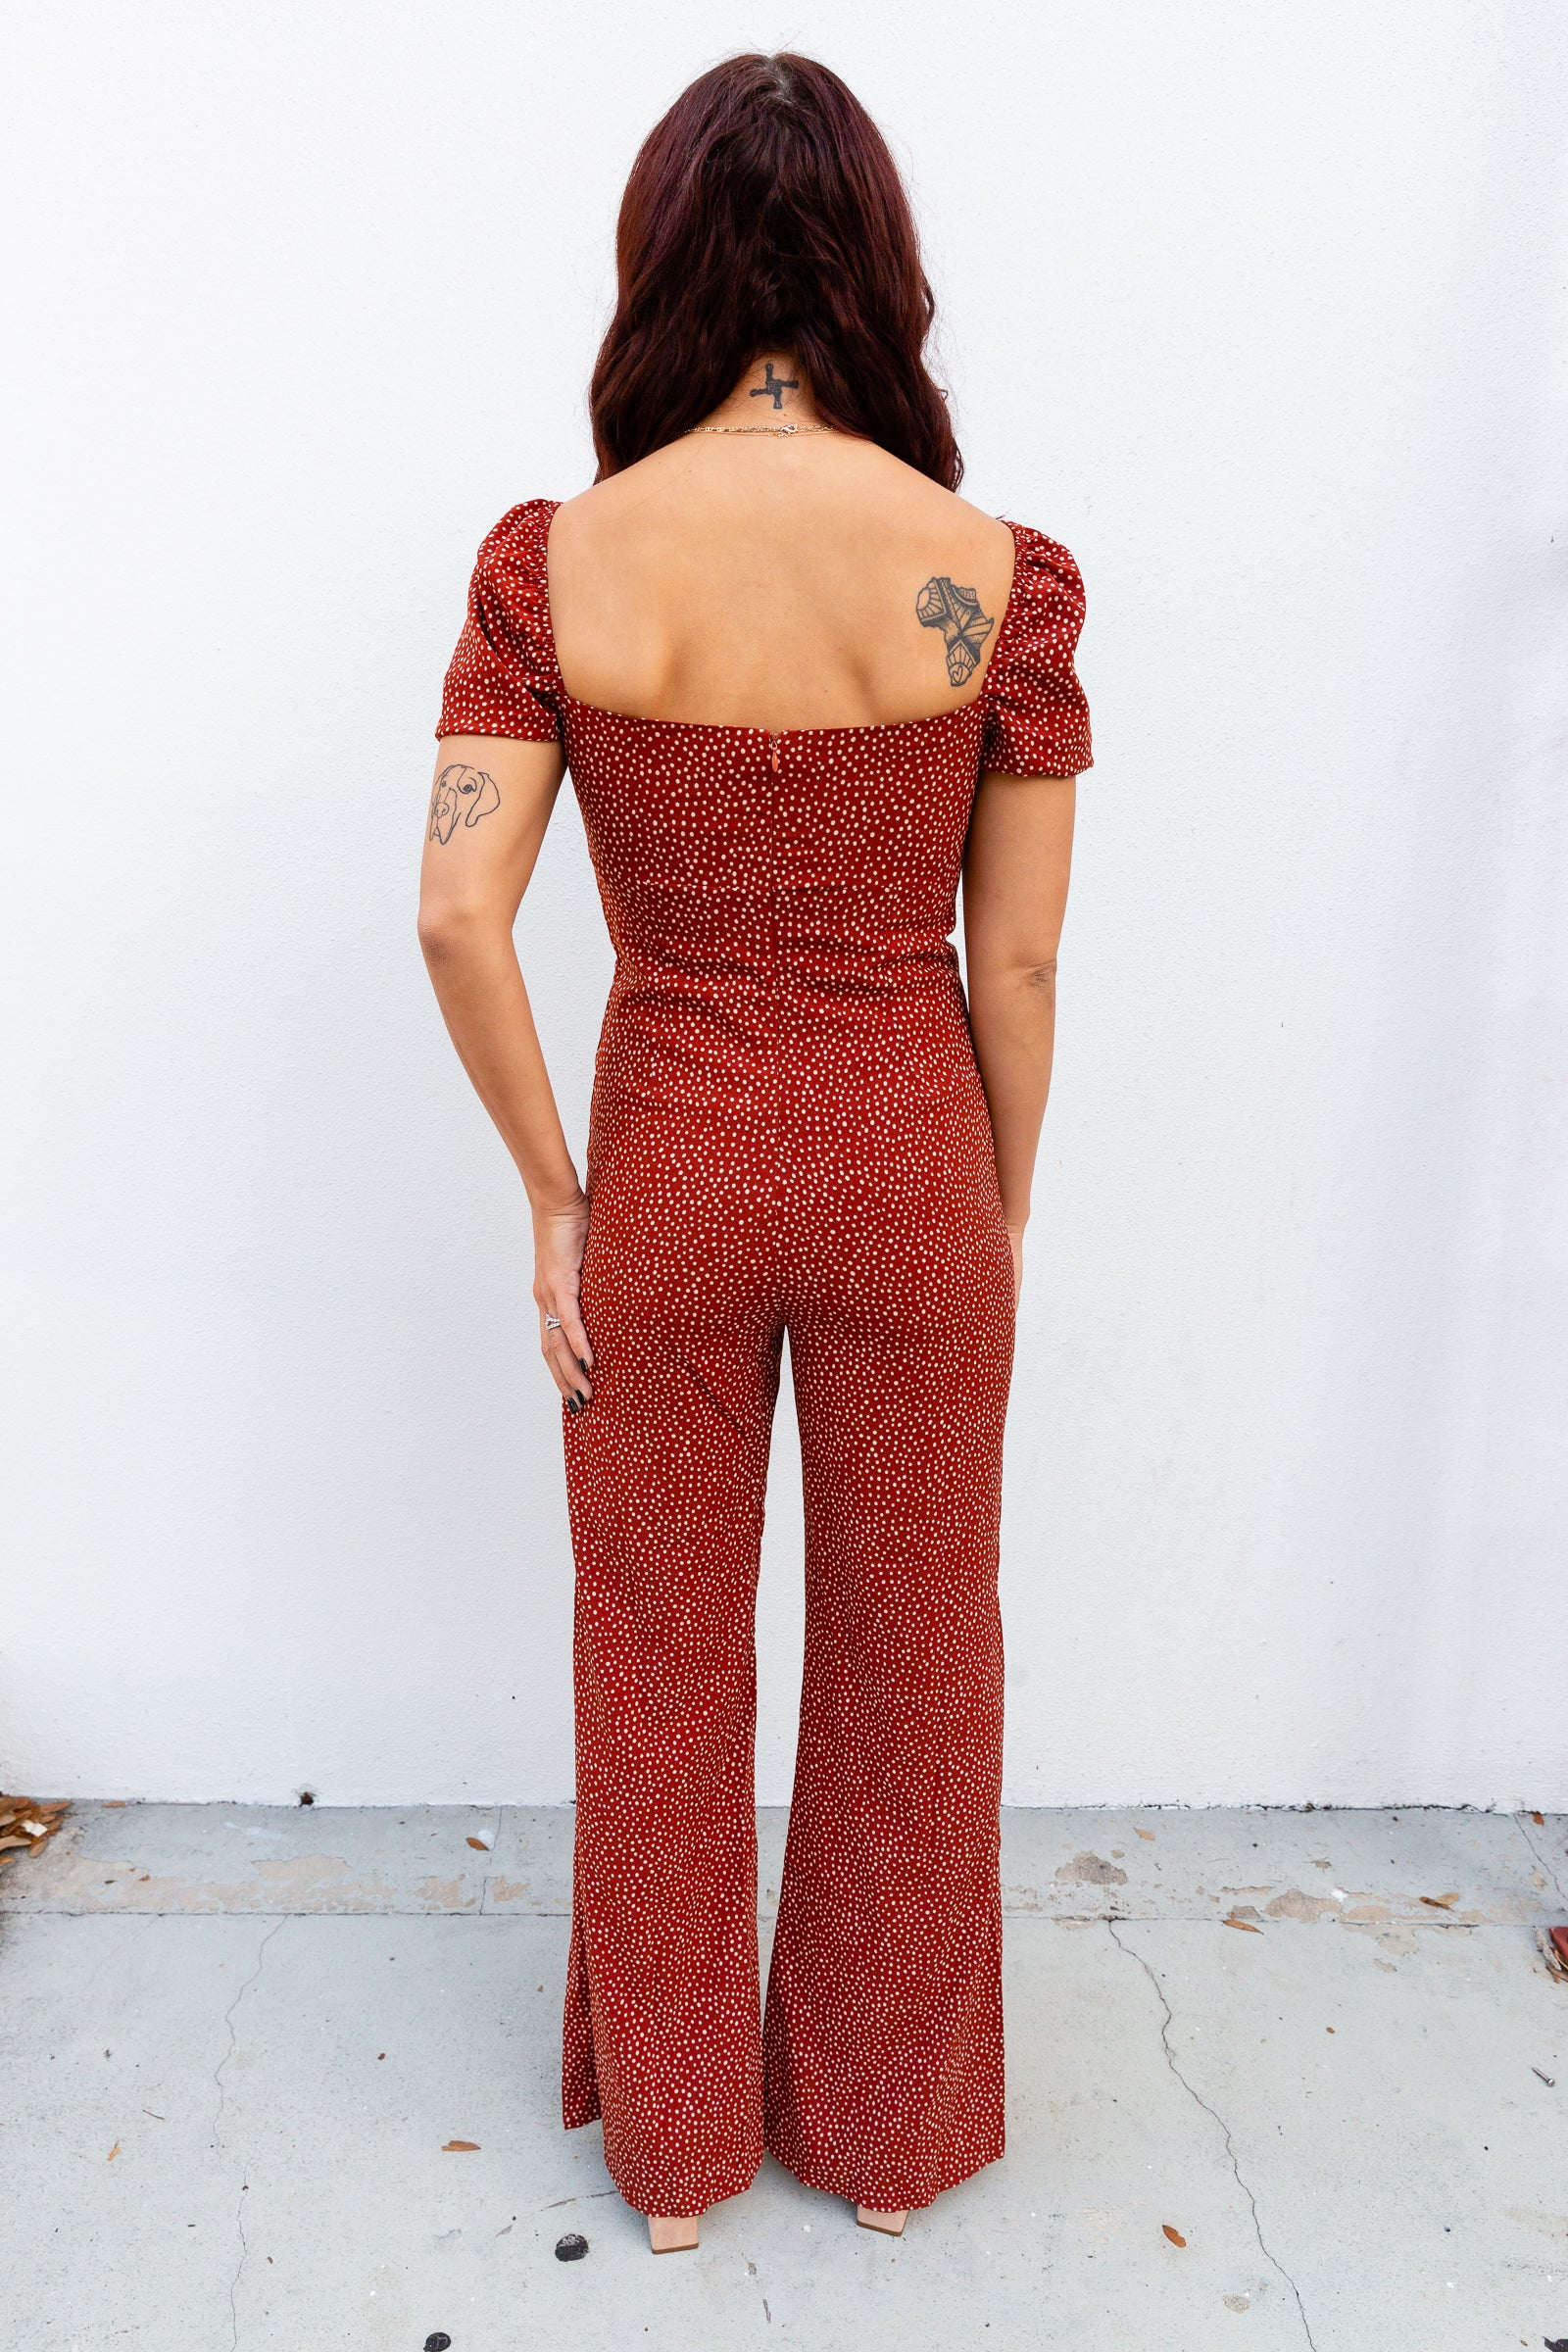 This polka dot printed jumpsuit has short elastic cuffed sleeves that attach to a v-neckline on a fitted bodice with a tie front hem and leads down into flowy and gently flared pant legs.